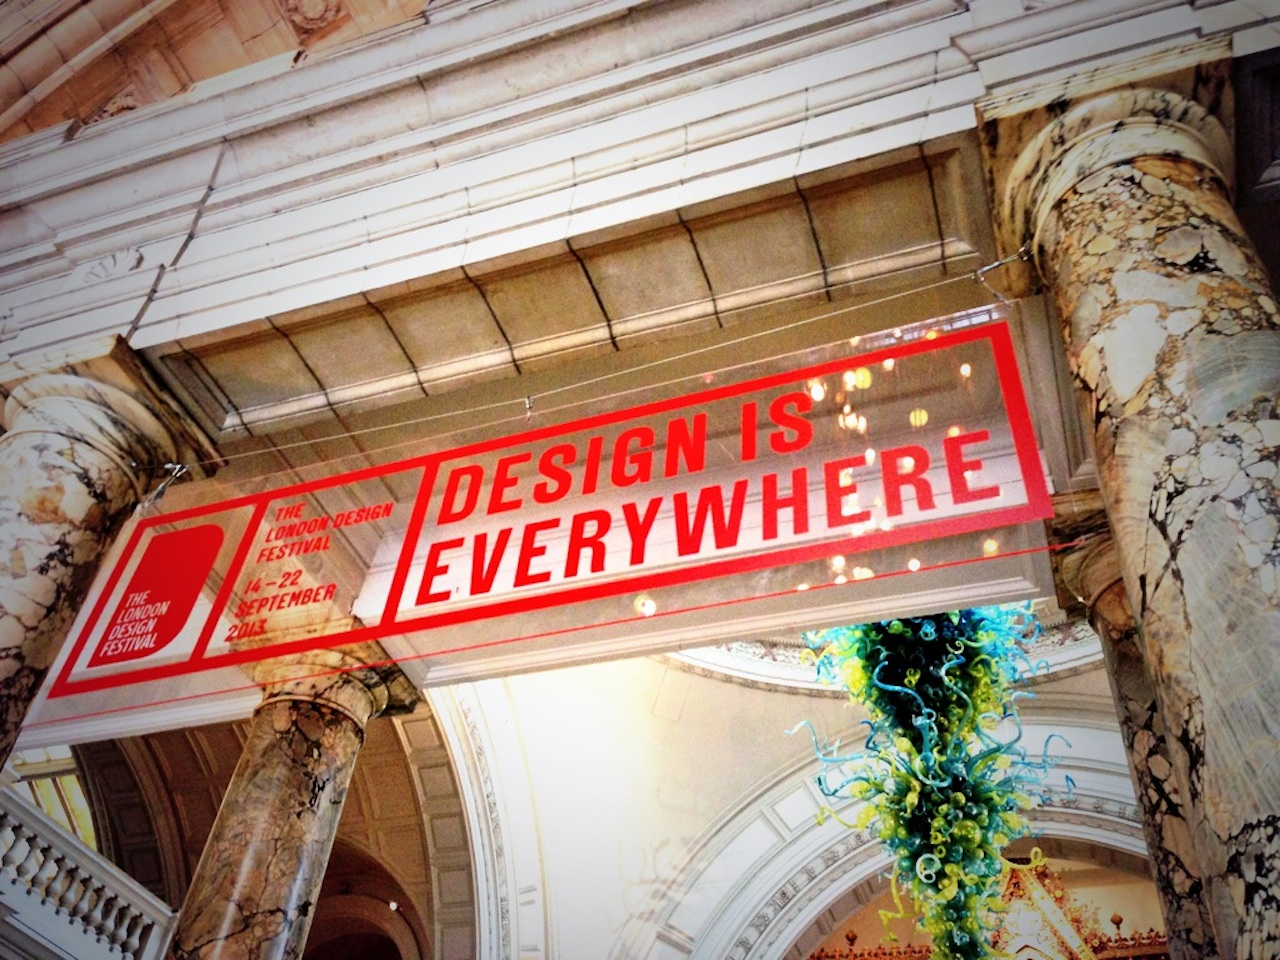 """The theme of this year's festival is """"Design is Everywhere"""" which has been boldly rendered in this red and white typographic identity by legendary design agency Pentagram . The signs are up all over town reminding us that design is all around us - it doesn't always have to mean somethingbeautiful, expensive or on a plinth."""